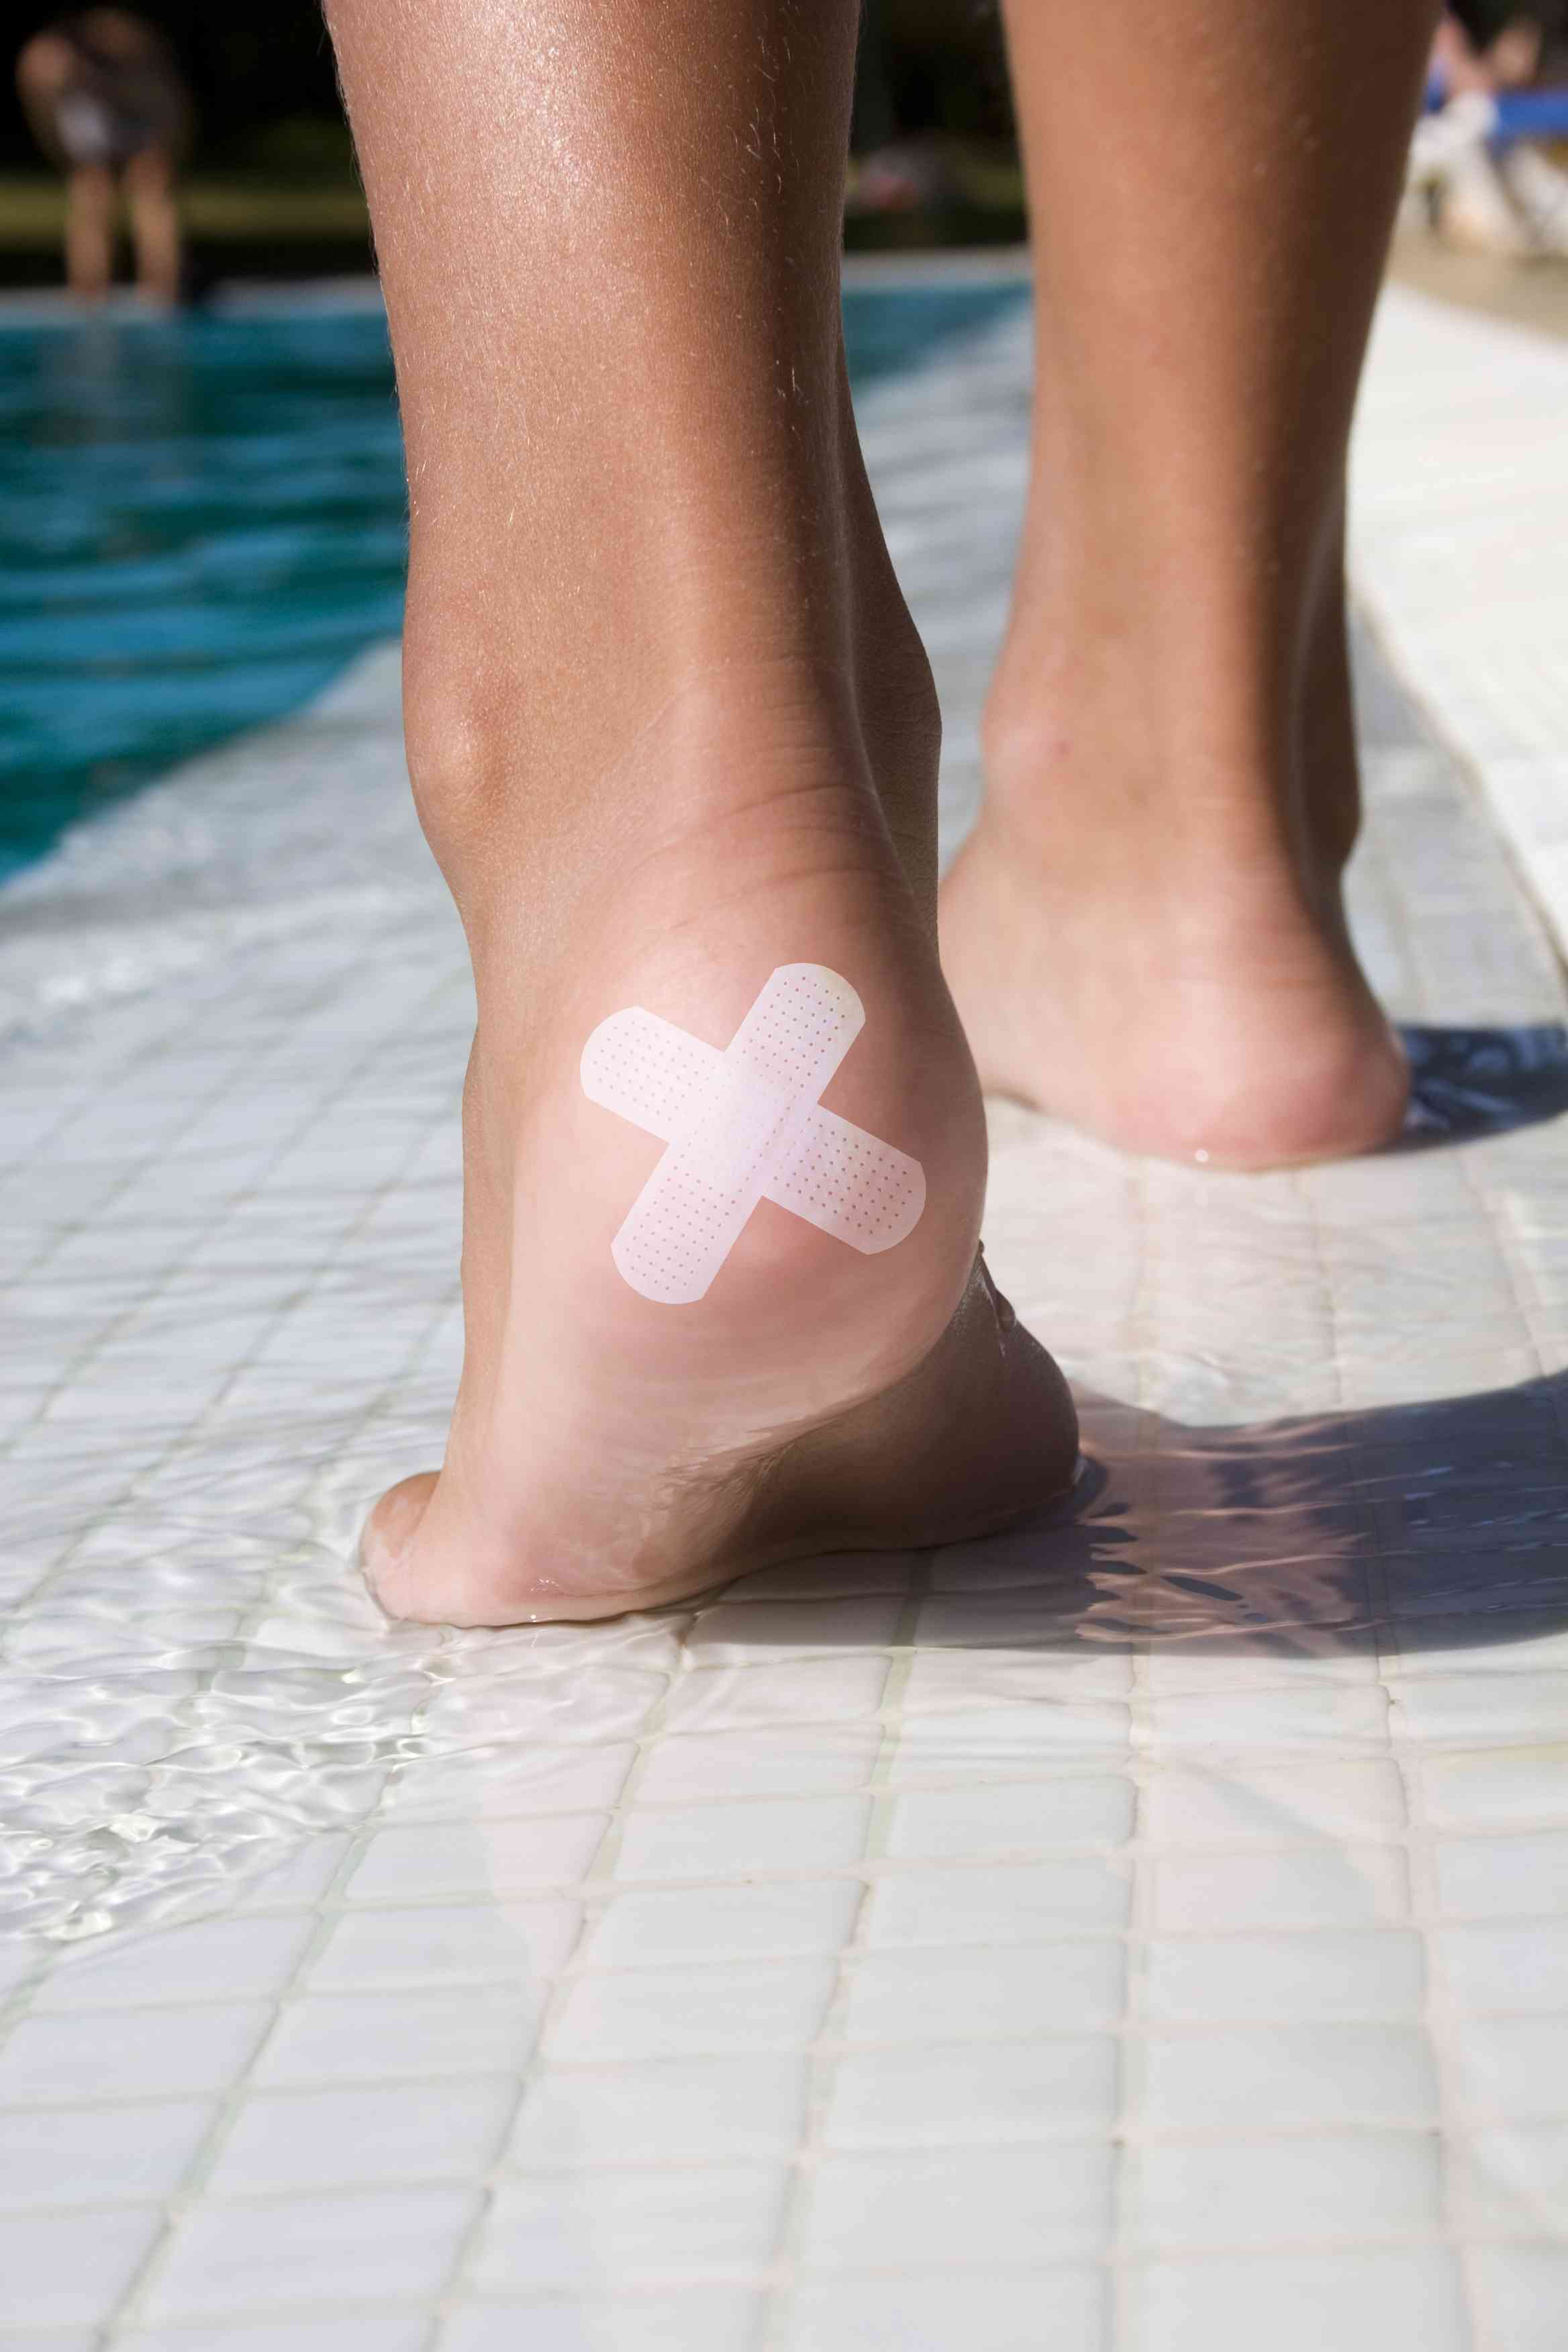 a bandage on the heel of the foot